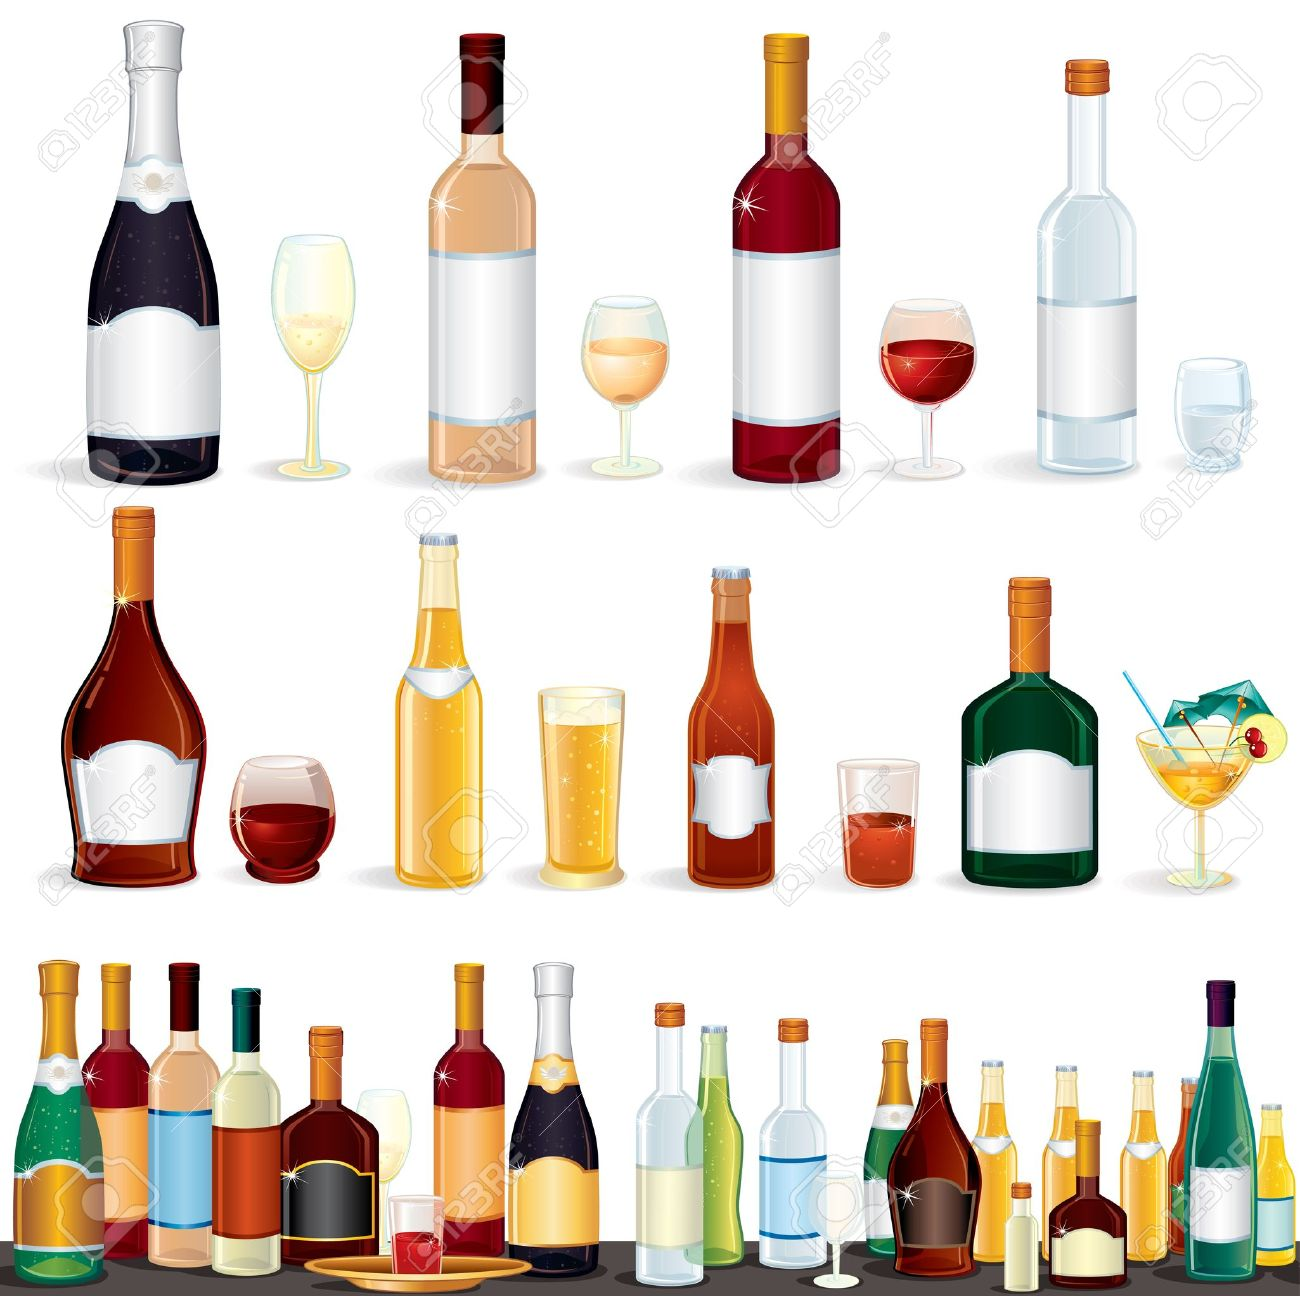 Free alcohol clipart images.